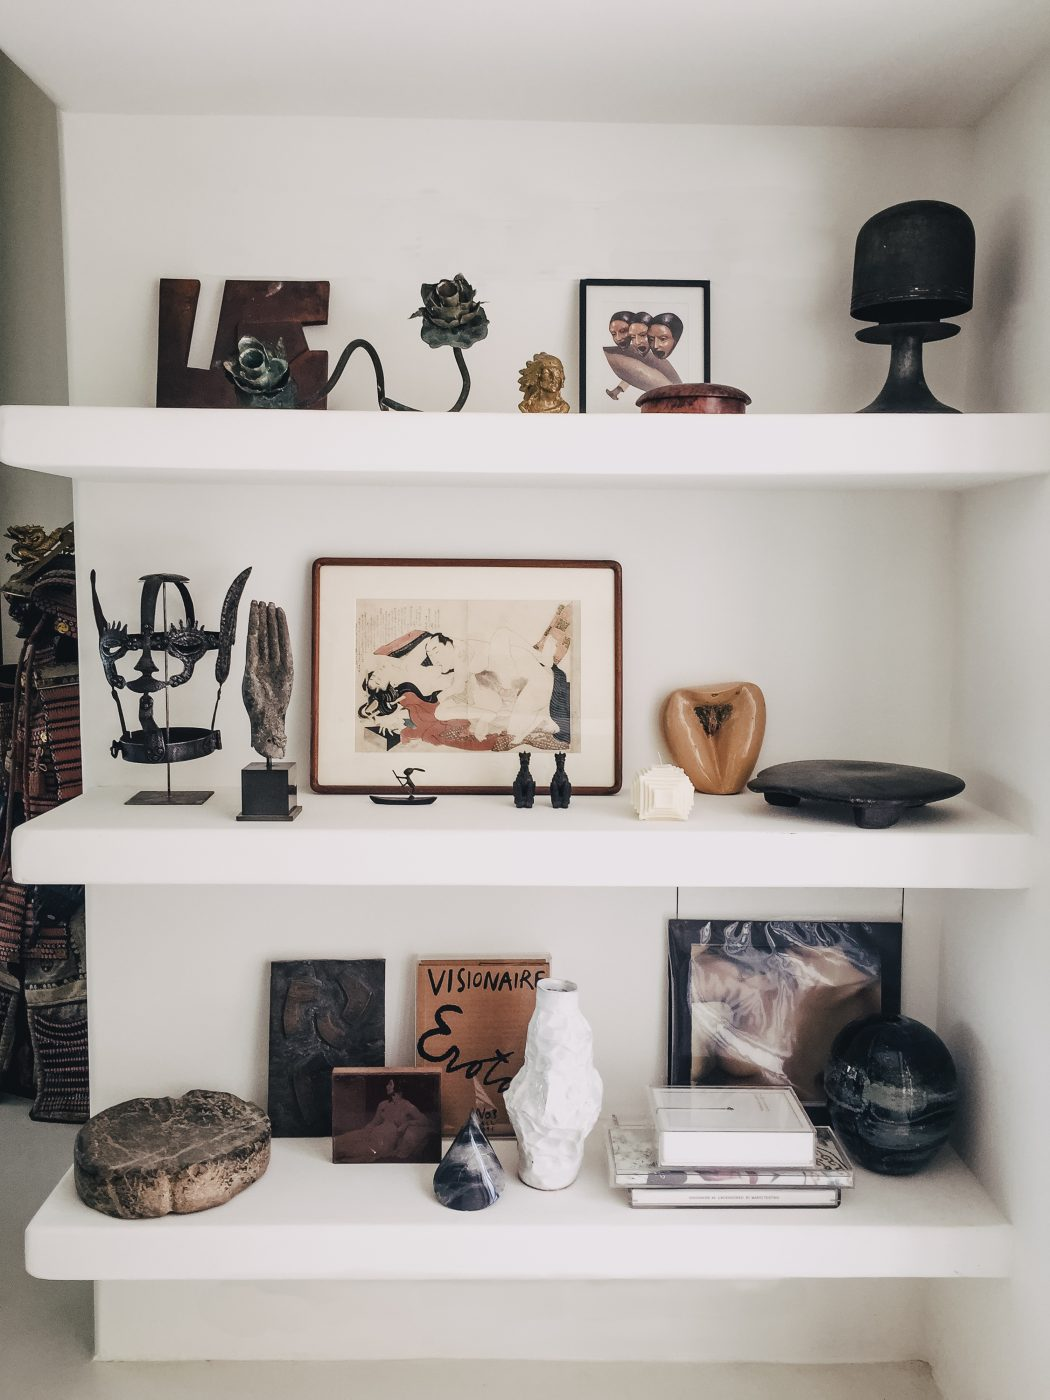 Shelf with artwork and sculpture pieces